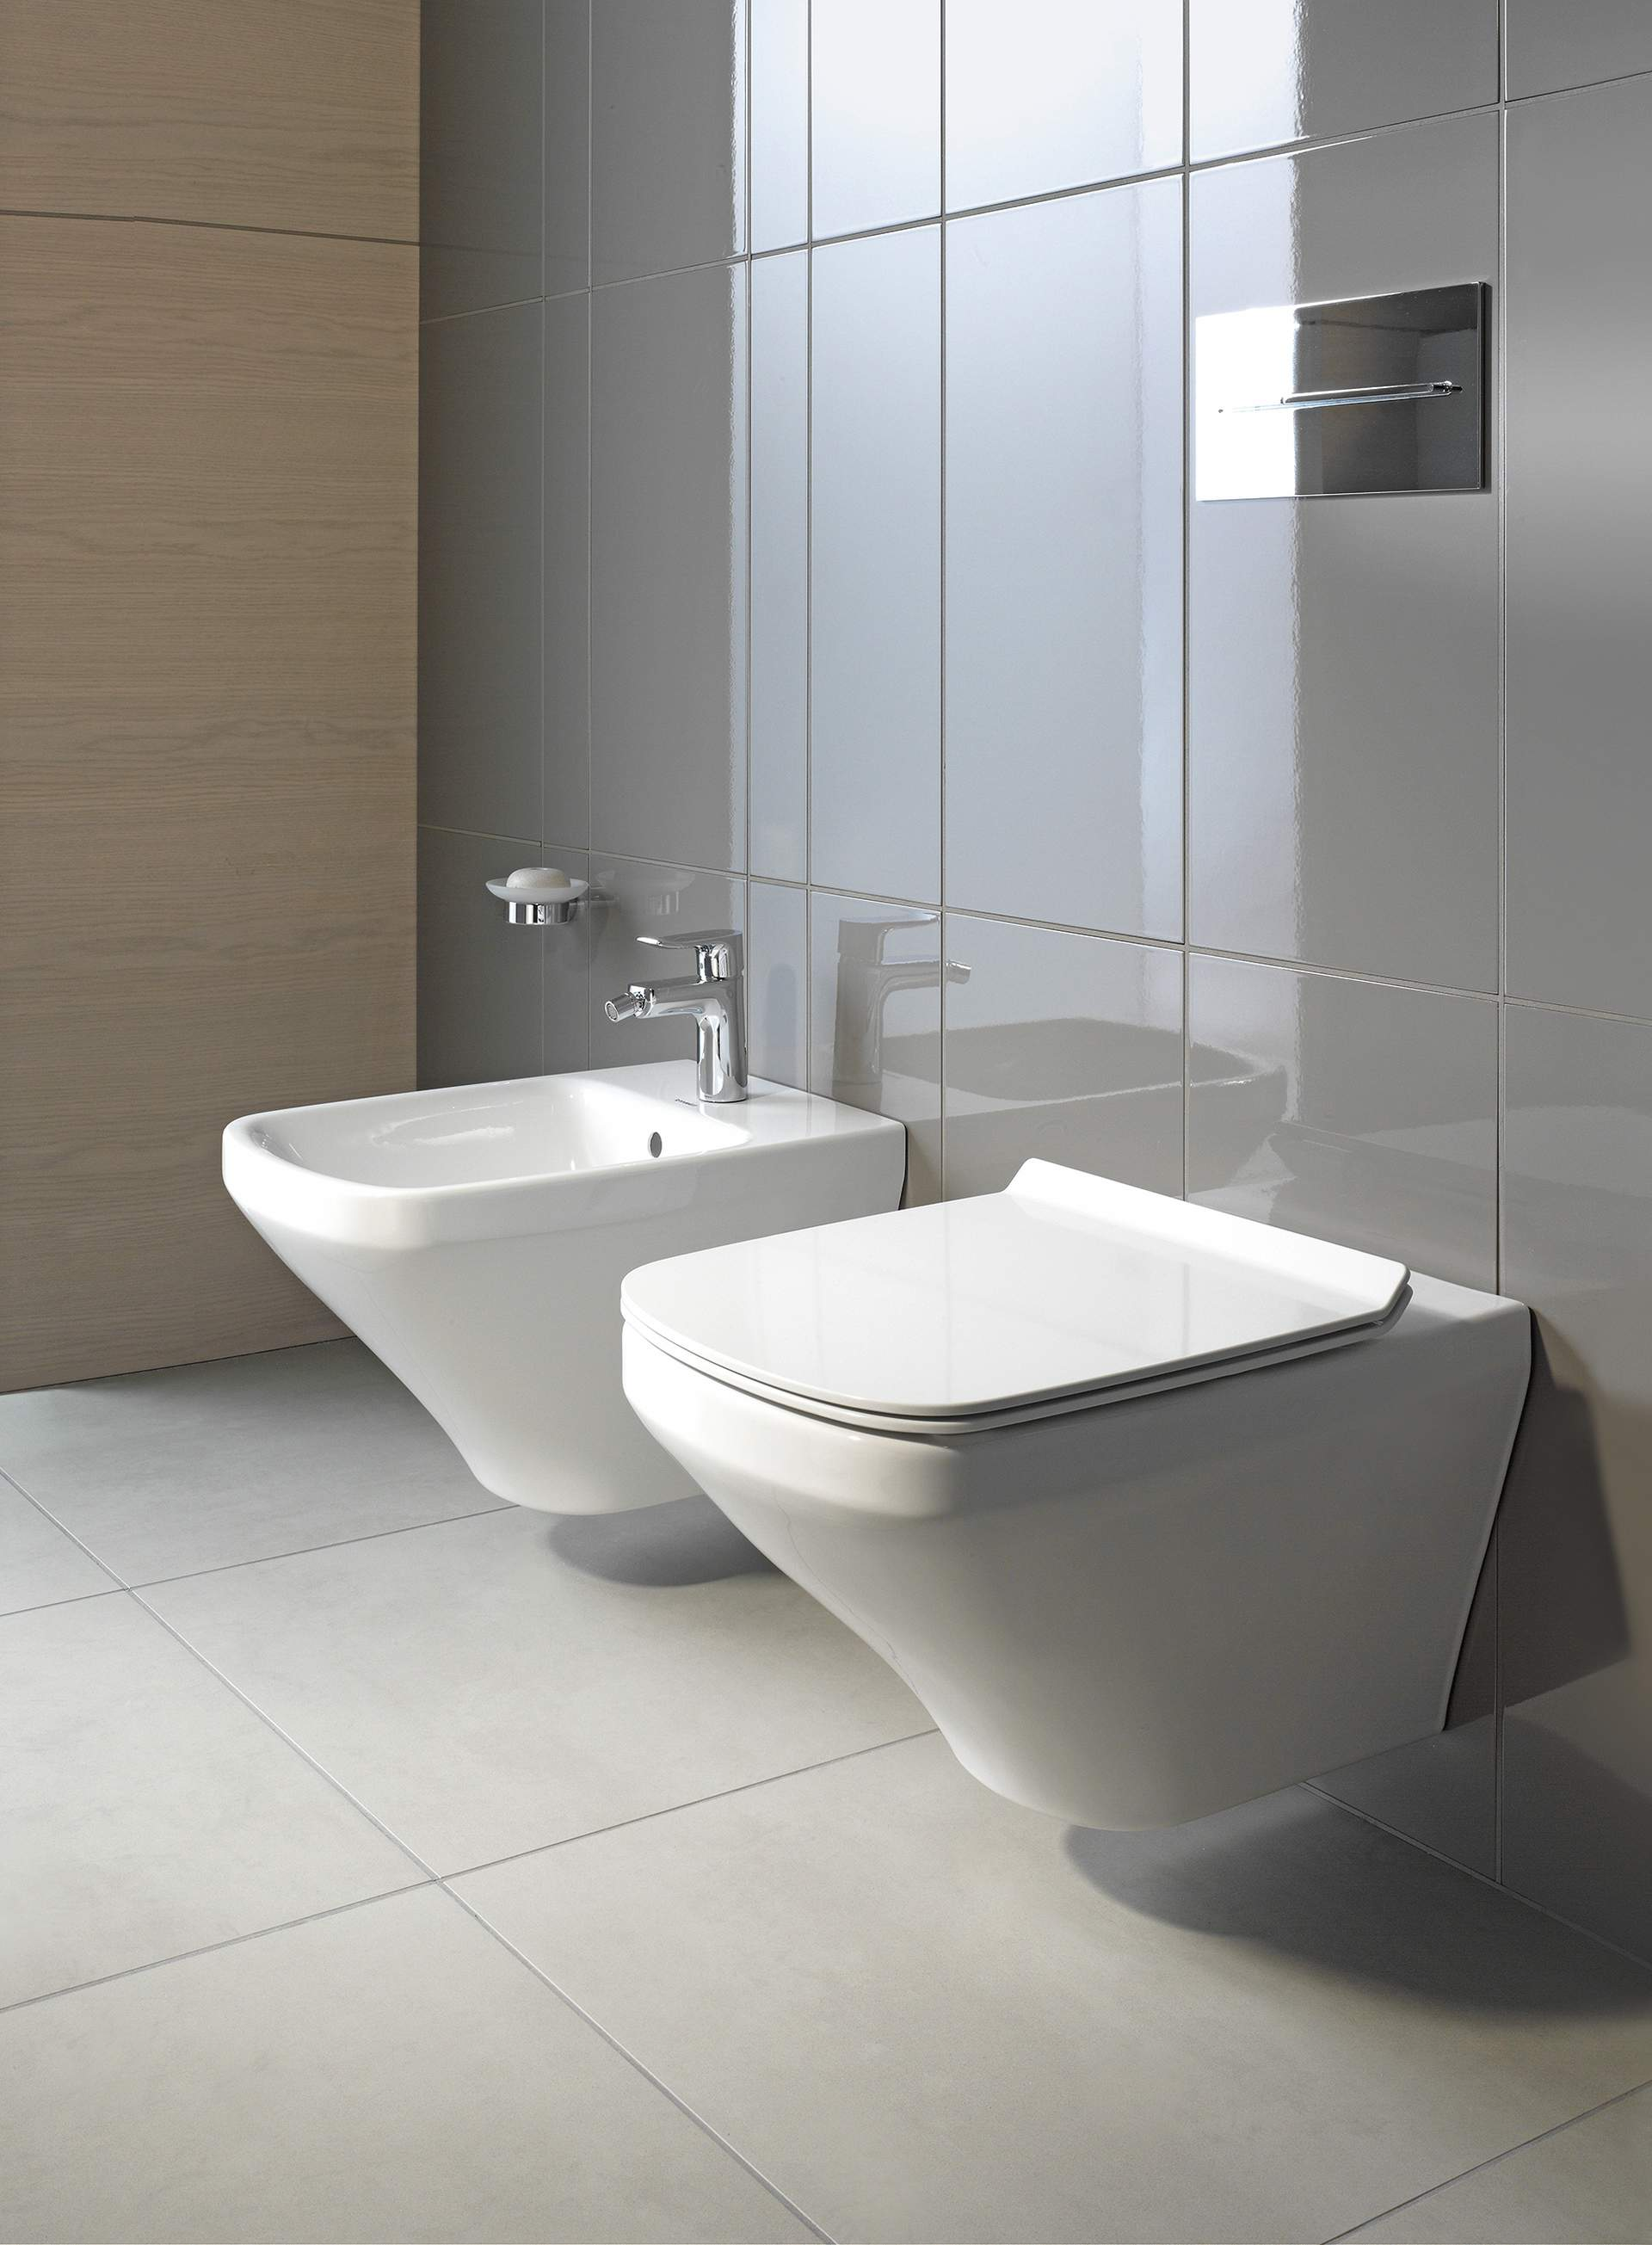 duravit wall mounted toilet installation instructions